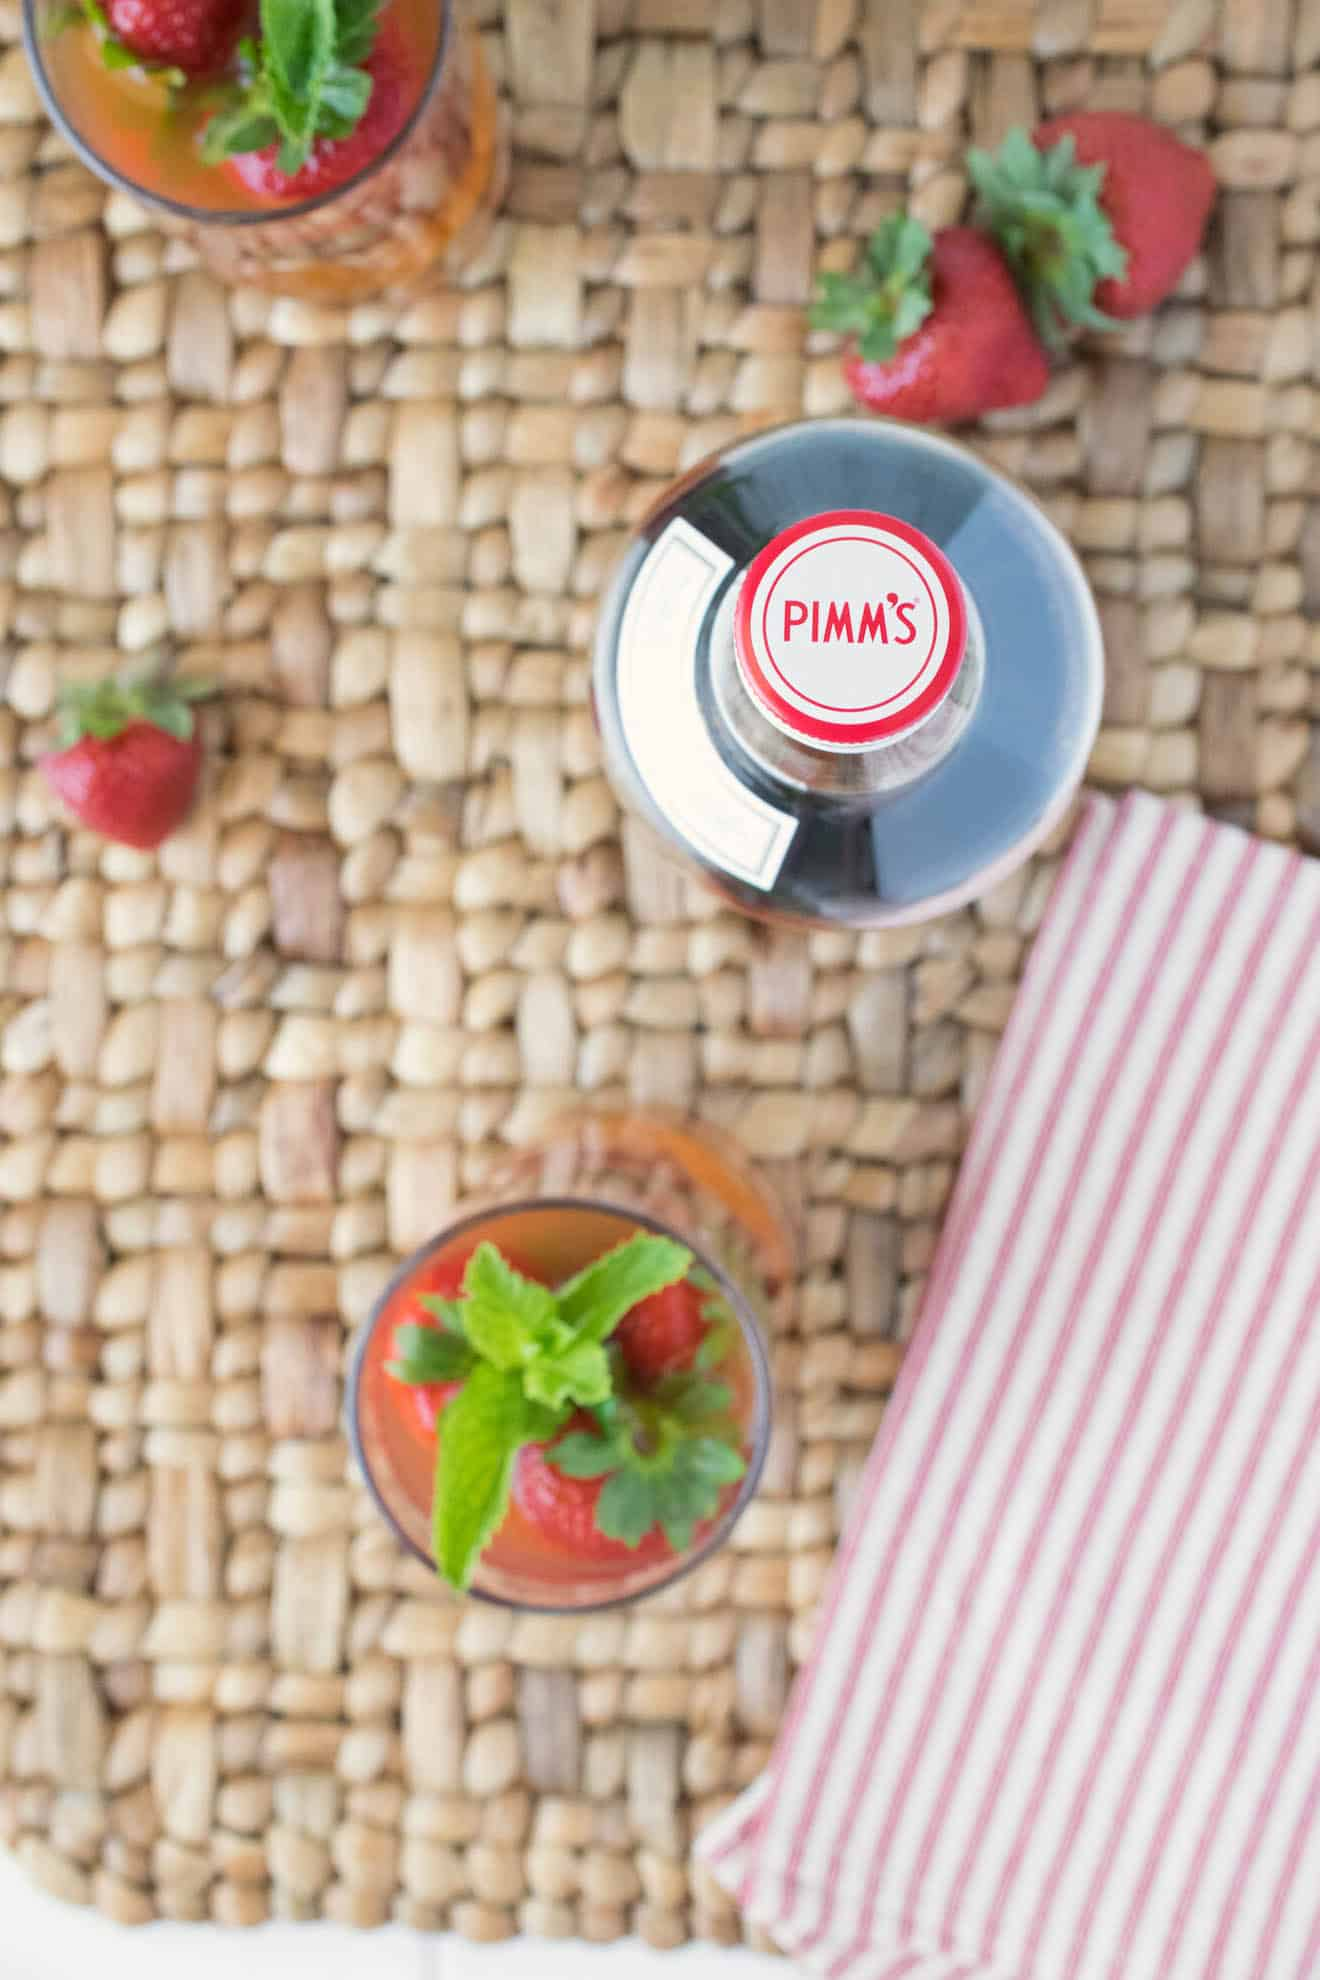 A view from overhead of the Pimm's bottle and drink with fresh strawberries and a striped napkin